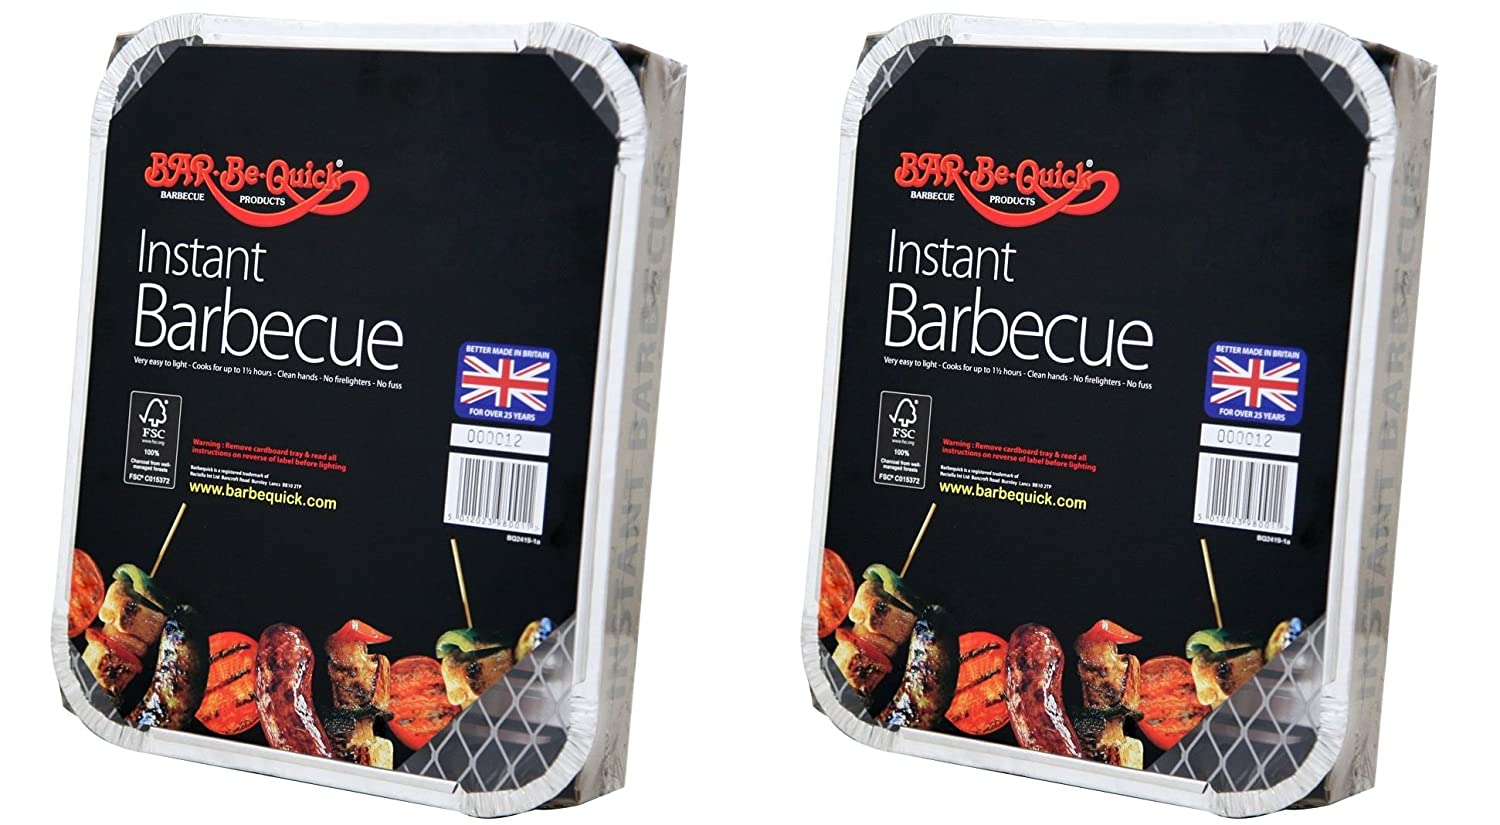 2 X Bar-Be-Quick Instant Barbecue packs- Each pack feeds 4 people-World's best brand leading disposable BBQ